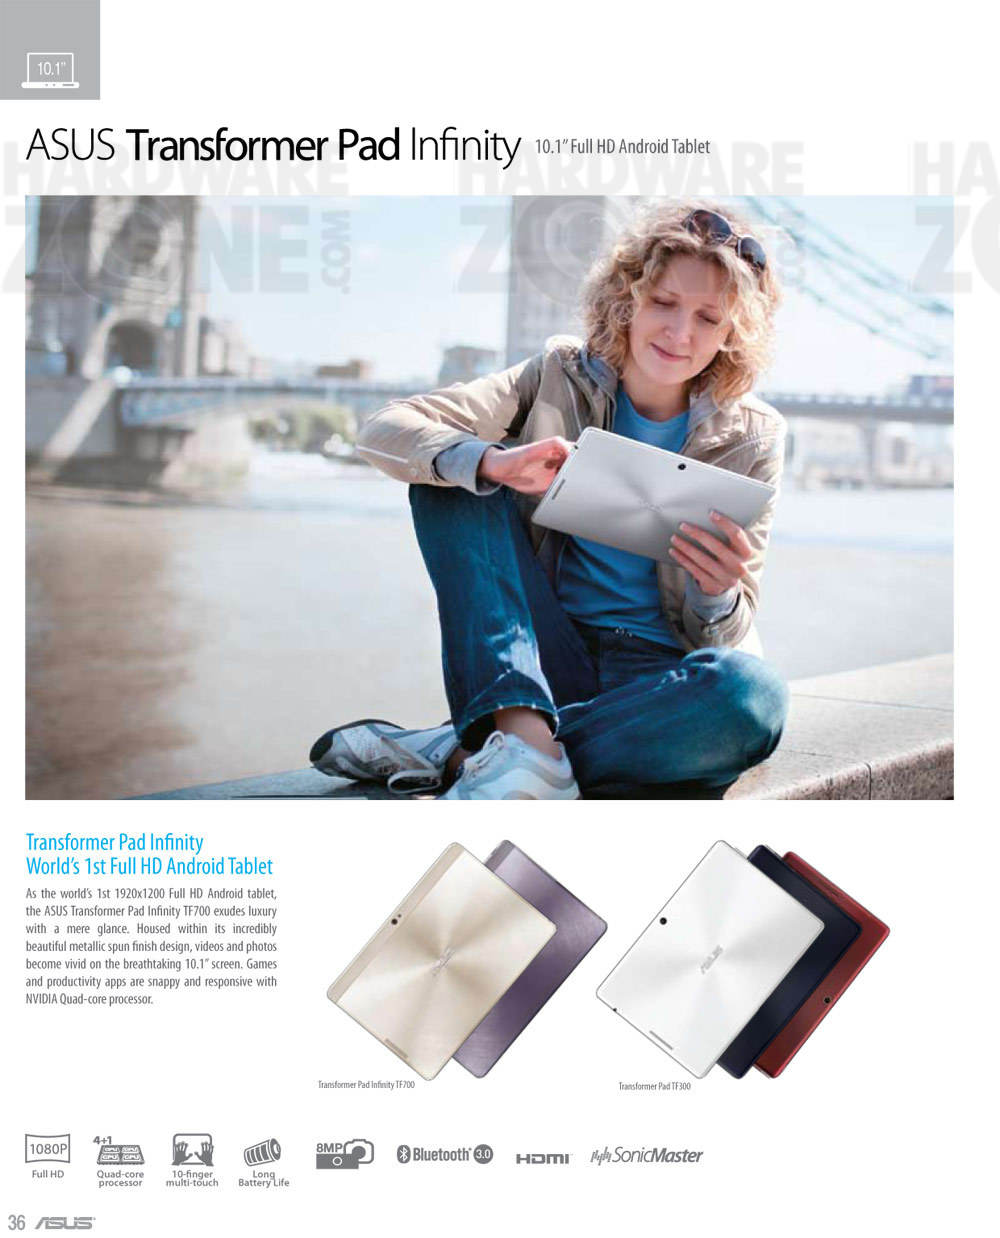 ASUS Transformer Pad Infinity - page 1